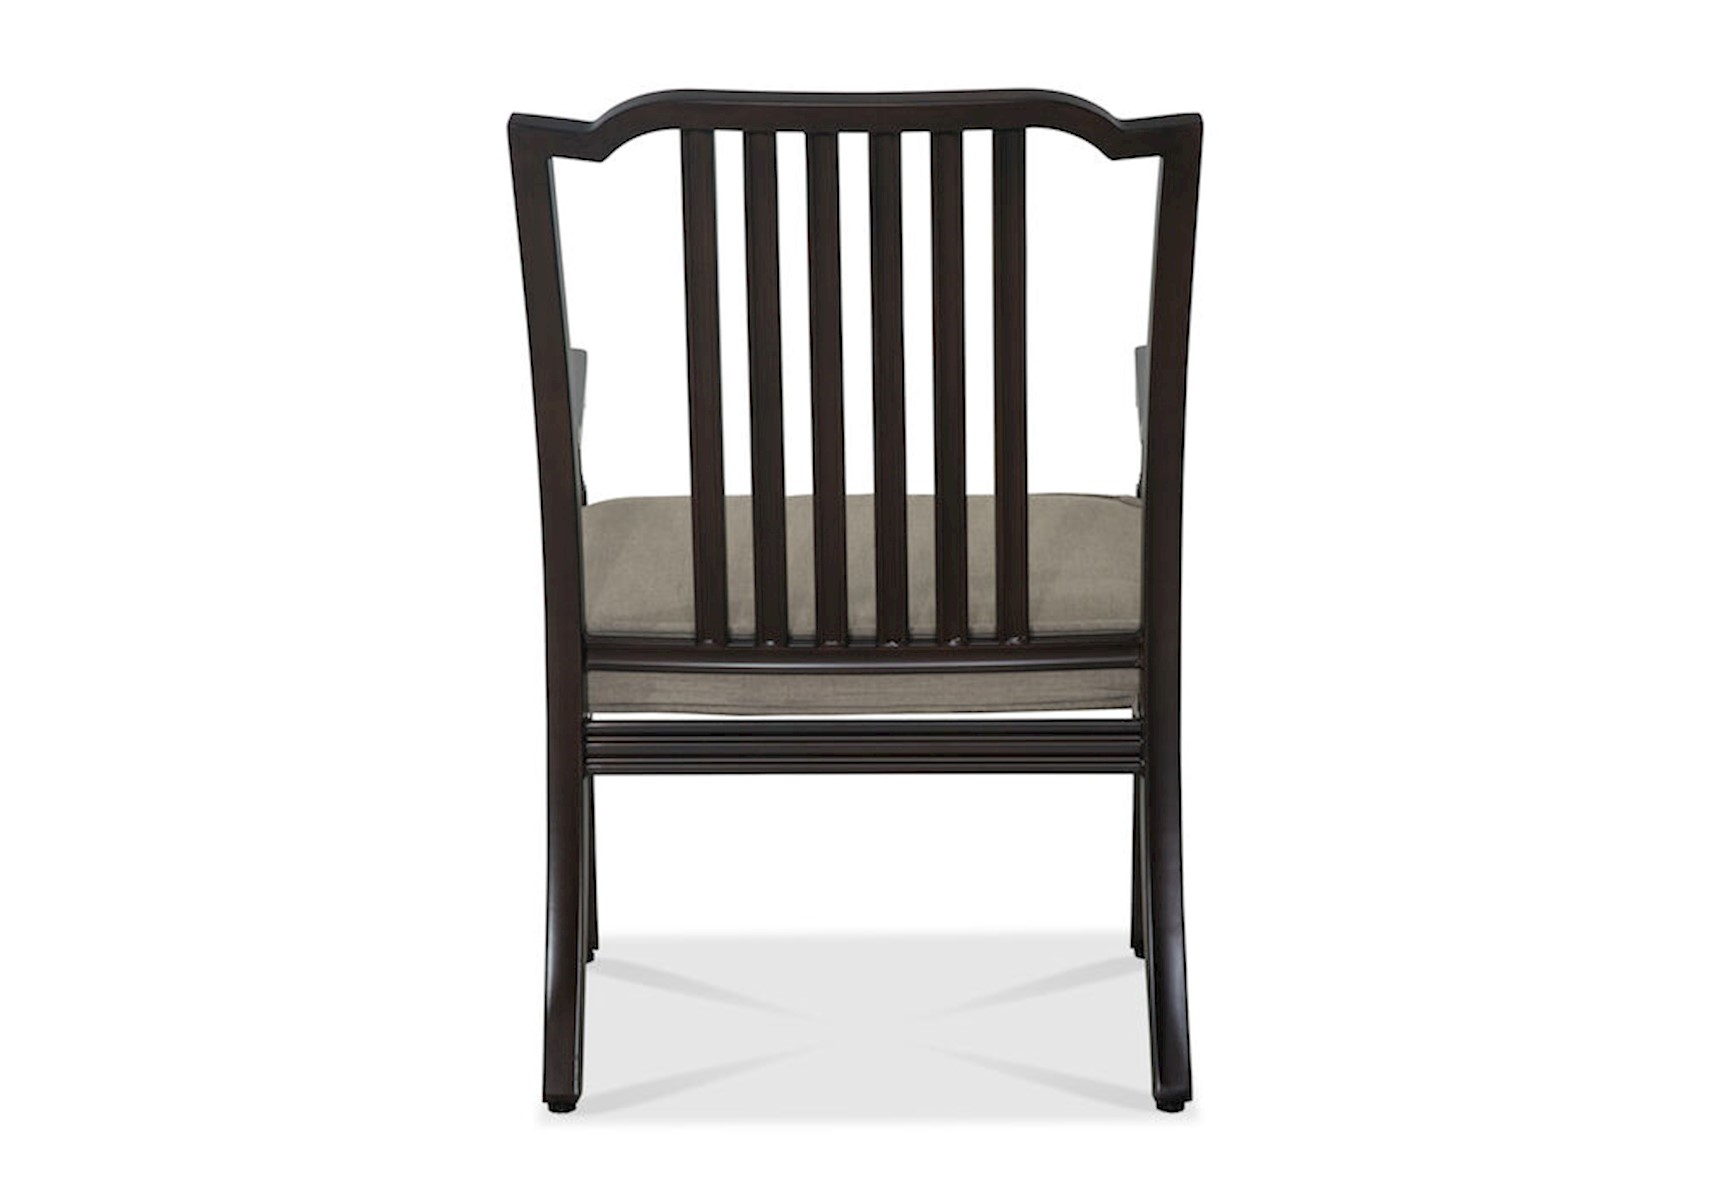 Lacks River House Outdoor Arm Chair By Paula Deen